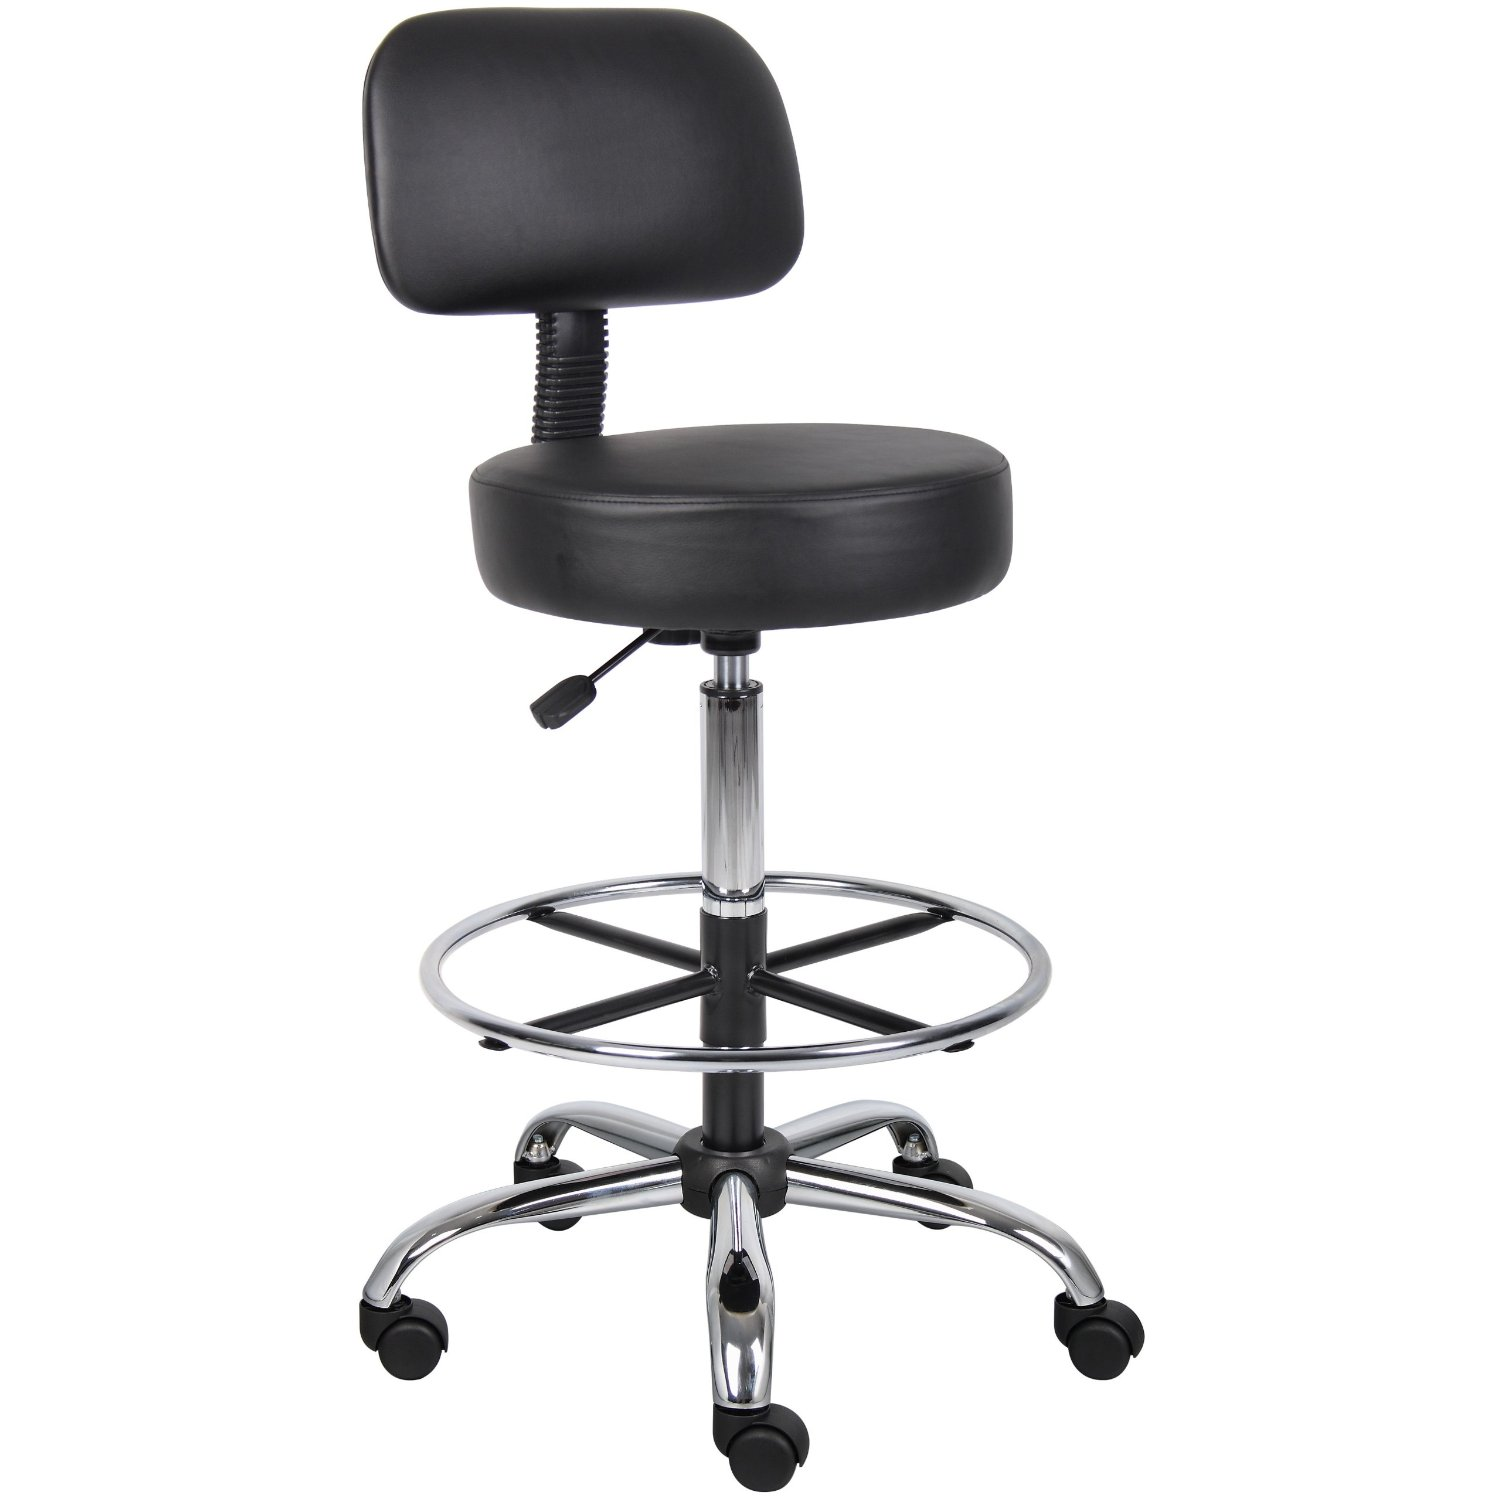 standing desk chairs spa pedicure chair for sale 2017 buyers guide  standingdeskgeek